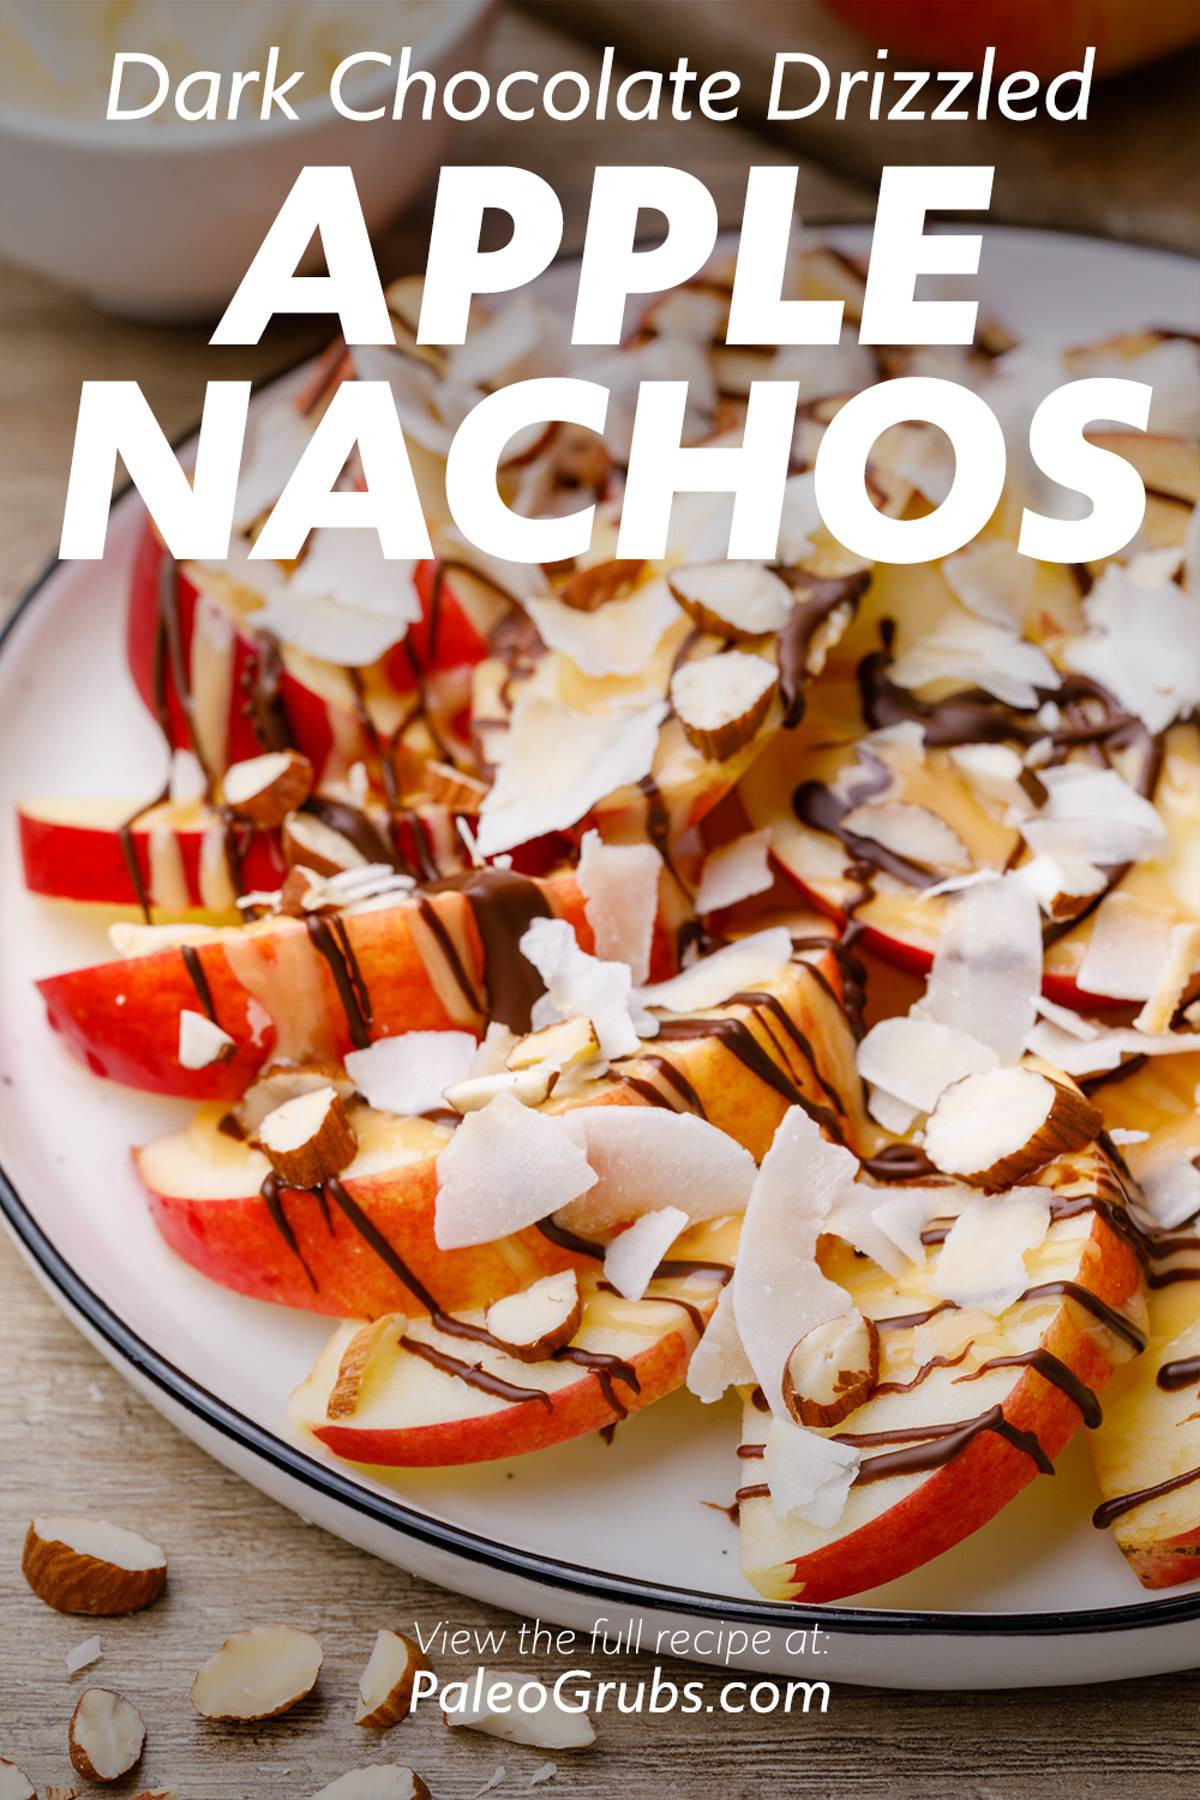 Dark Chocolate Drizzled Paleo Apple Nachos